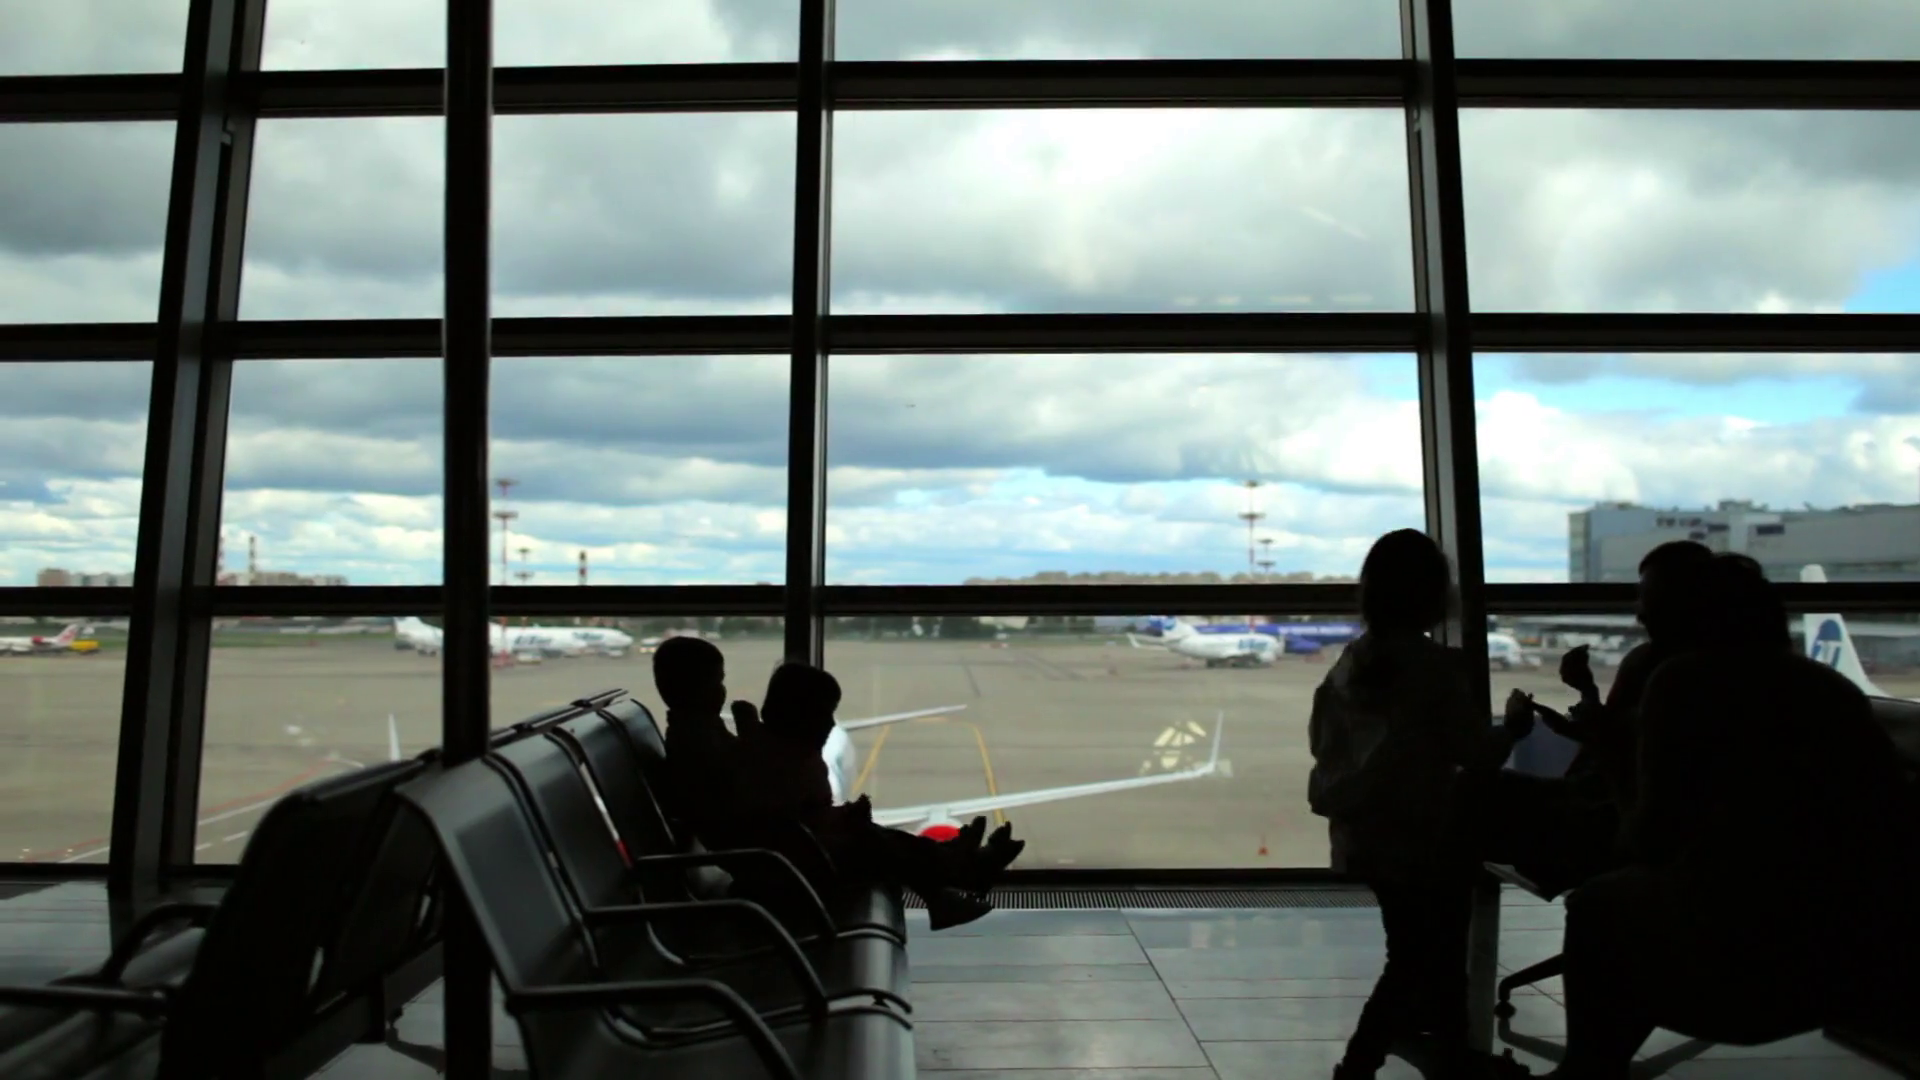 Silhouette Family With Children Sitting In Armchairs In The Airport Departure Zone Stock Video Footage Storyblocks